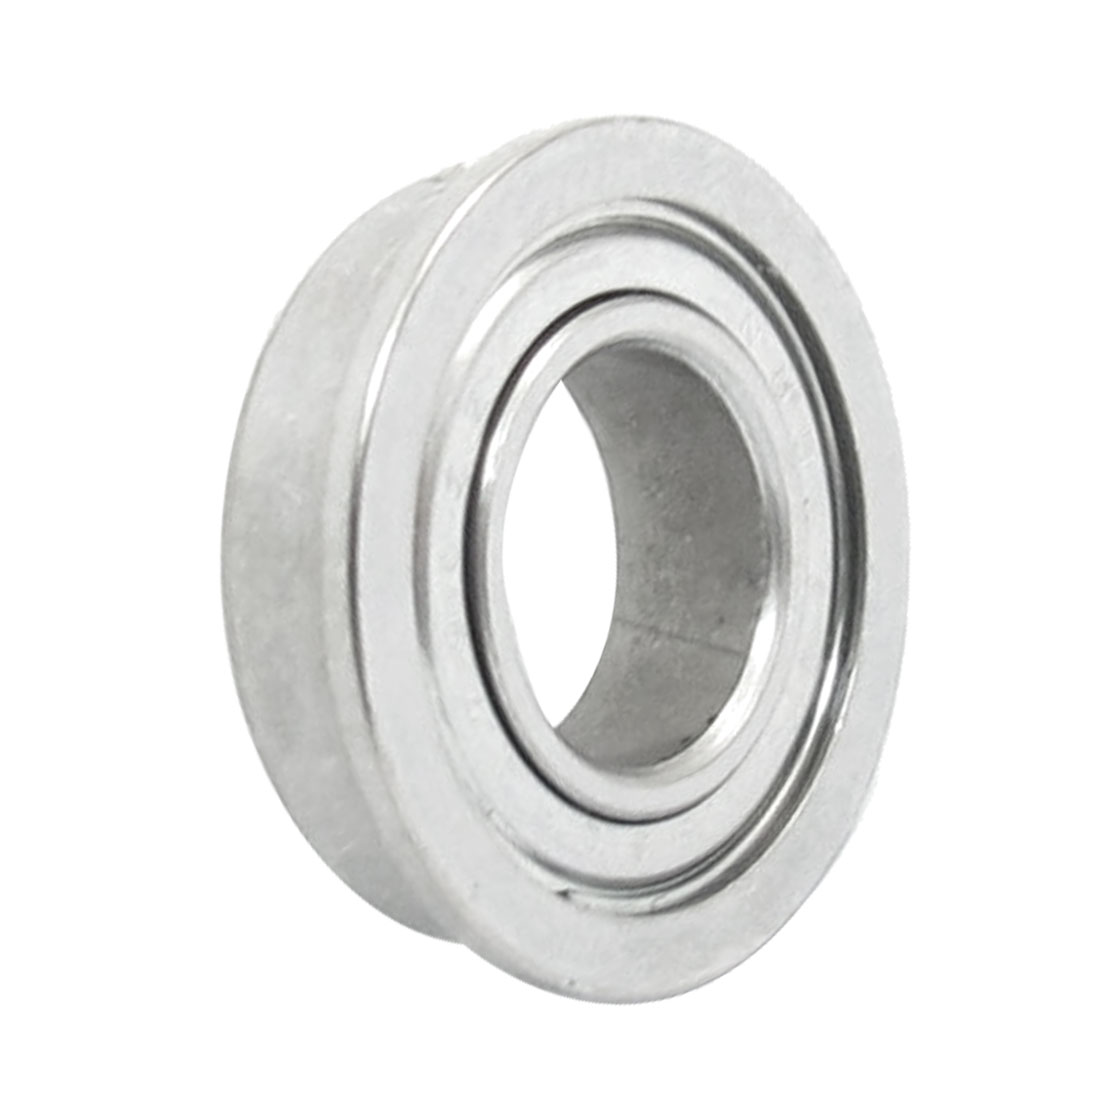 F689 Radial Shielded 17mm x 9mm x 5mm Deep Groove Flange Ball Bearing